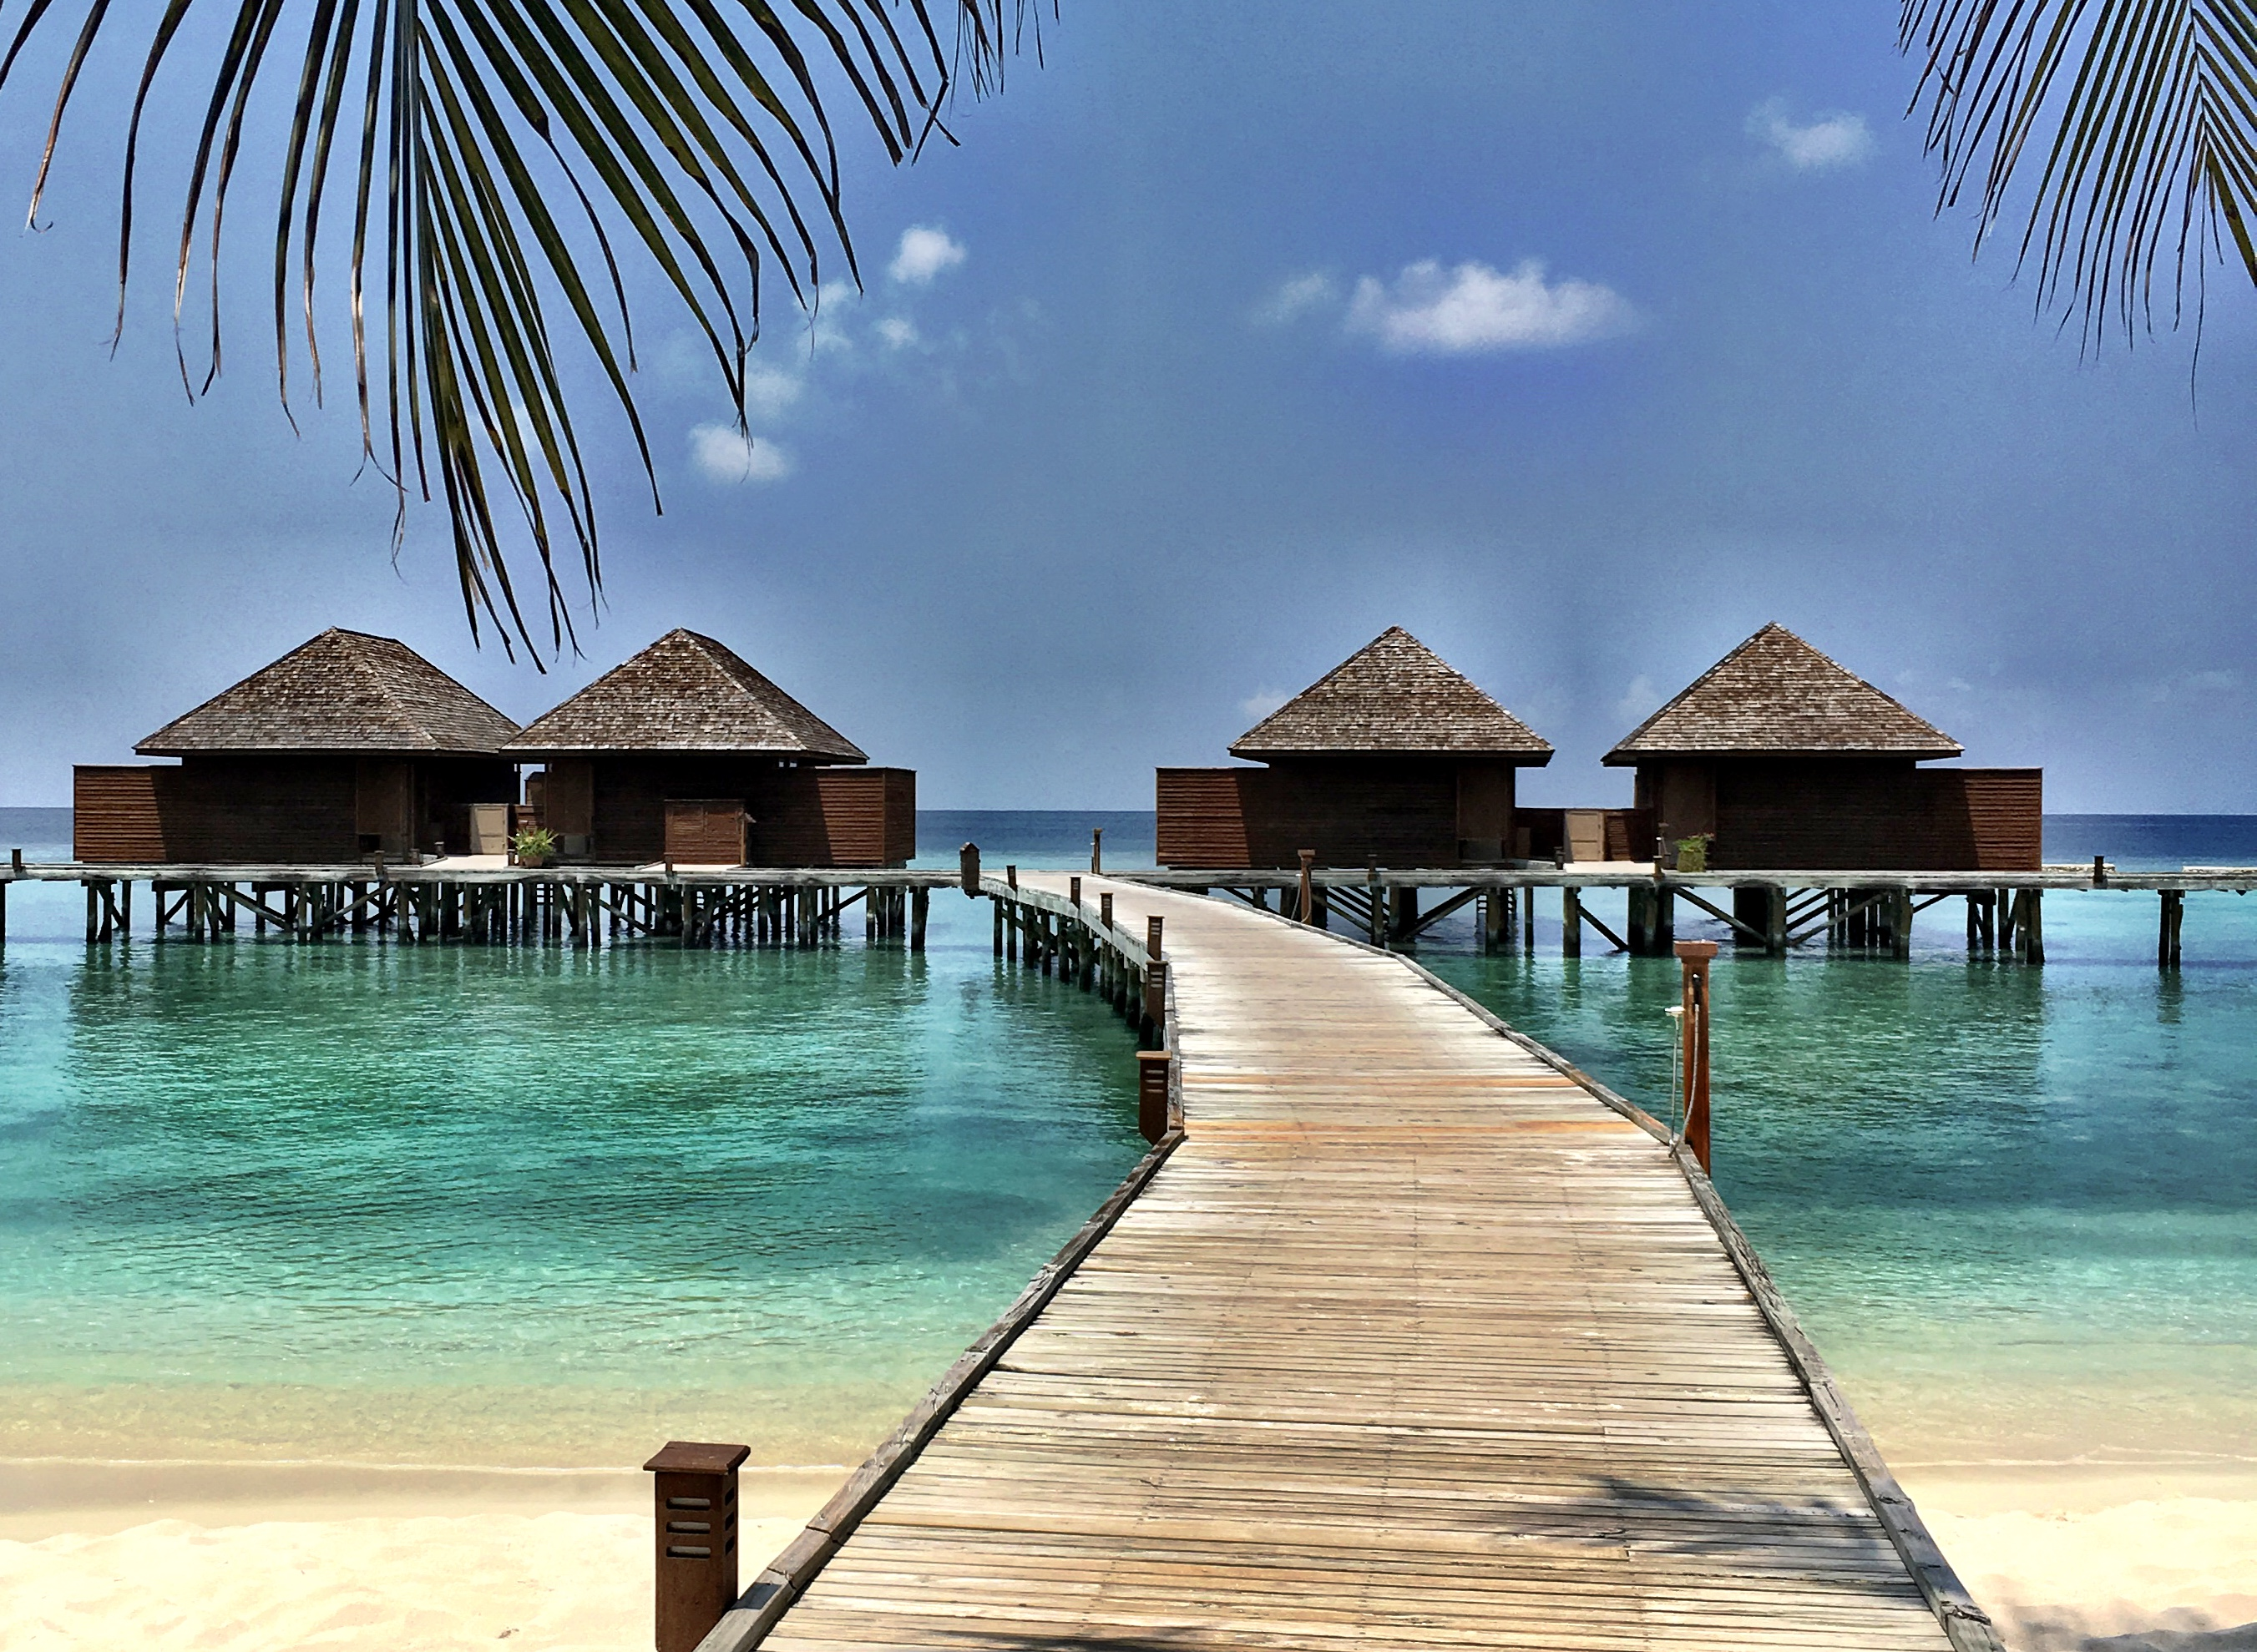 Veligandu Island - Maldives - Overwater Bungalows View